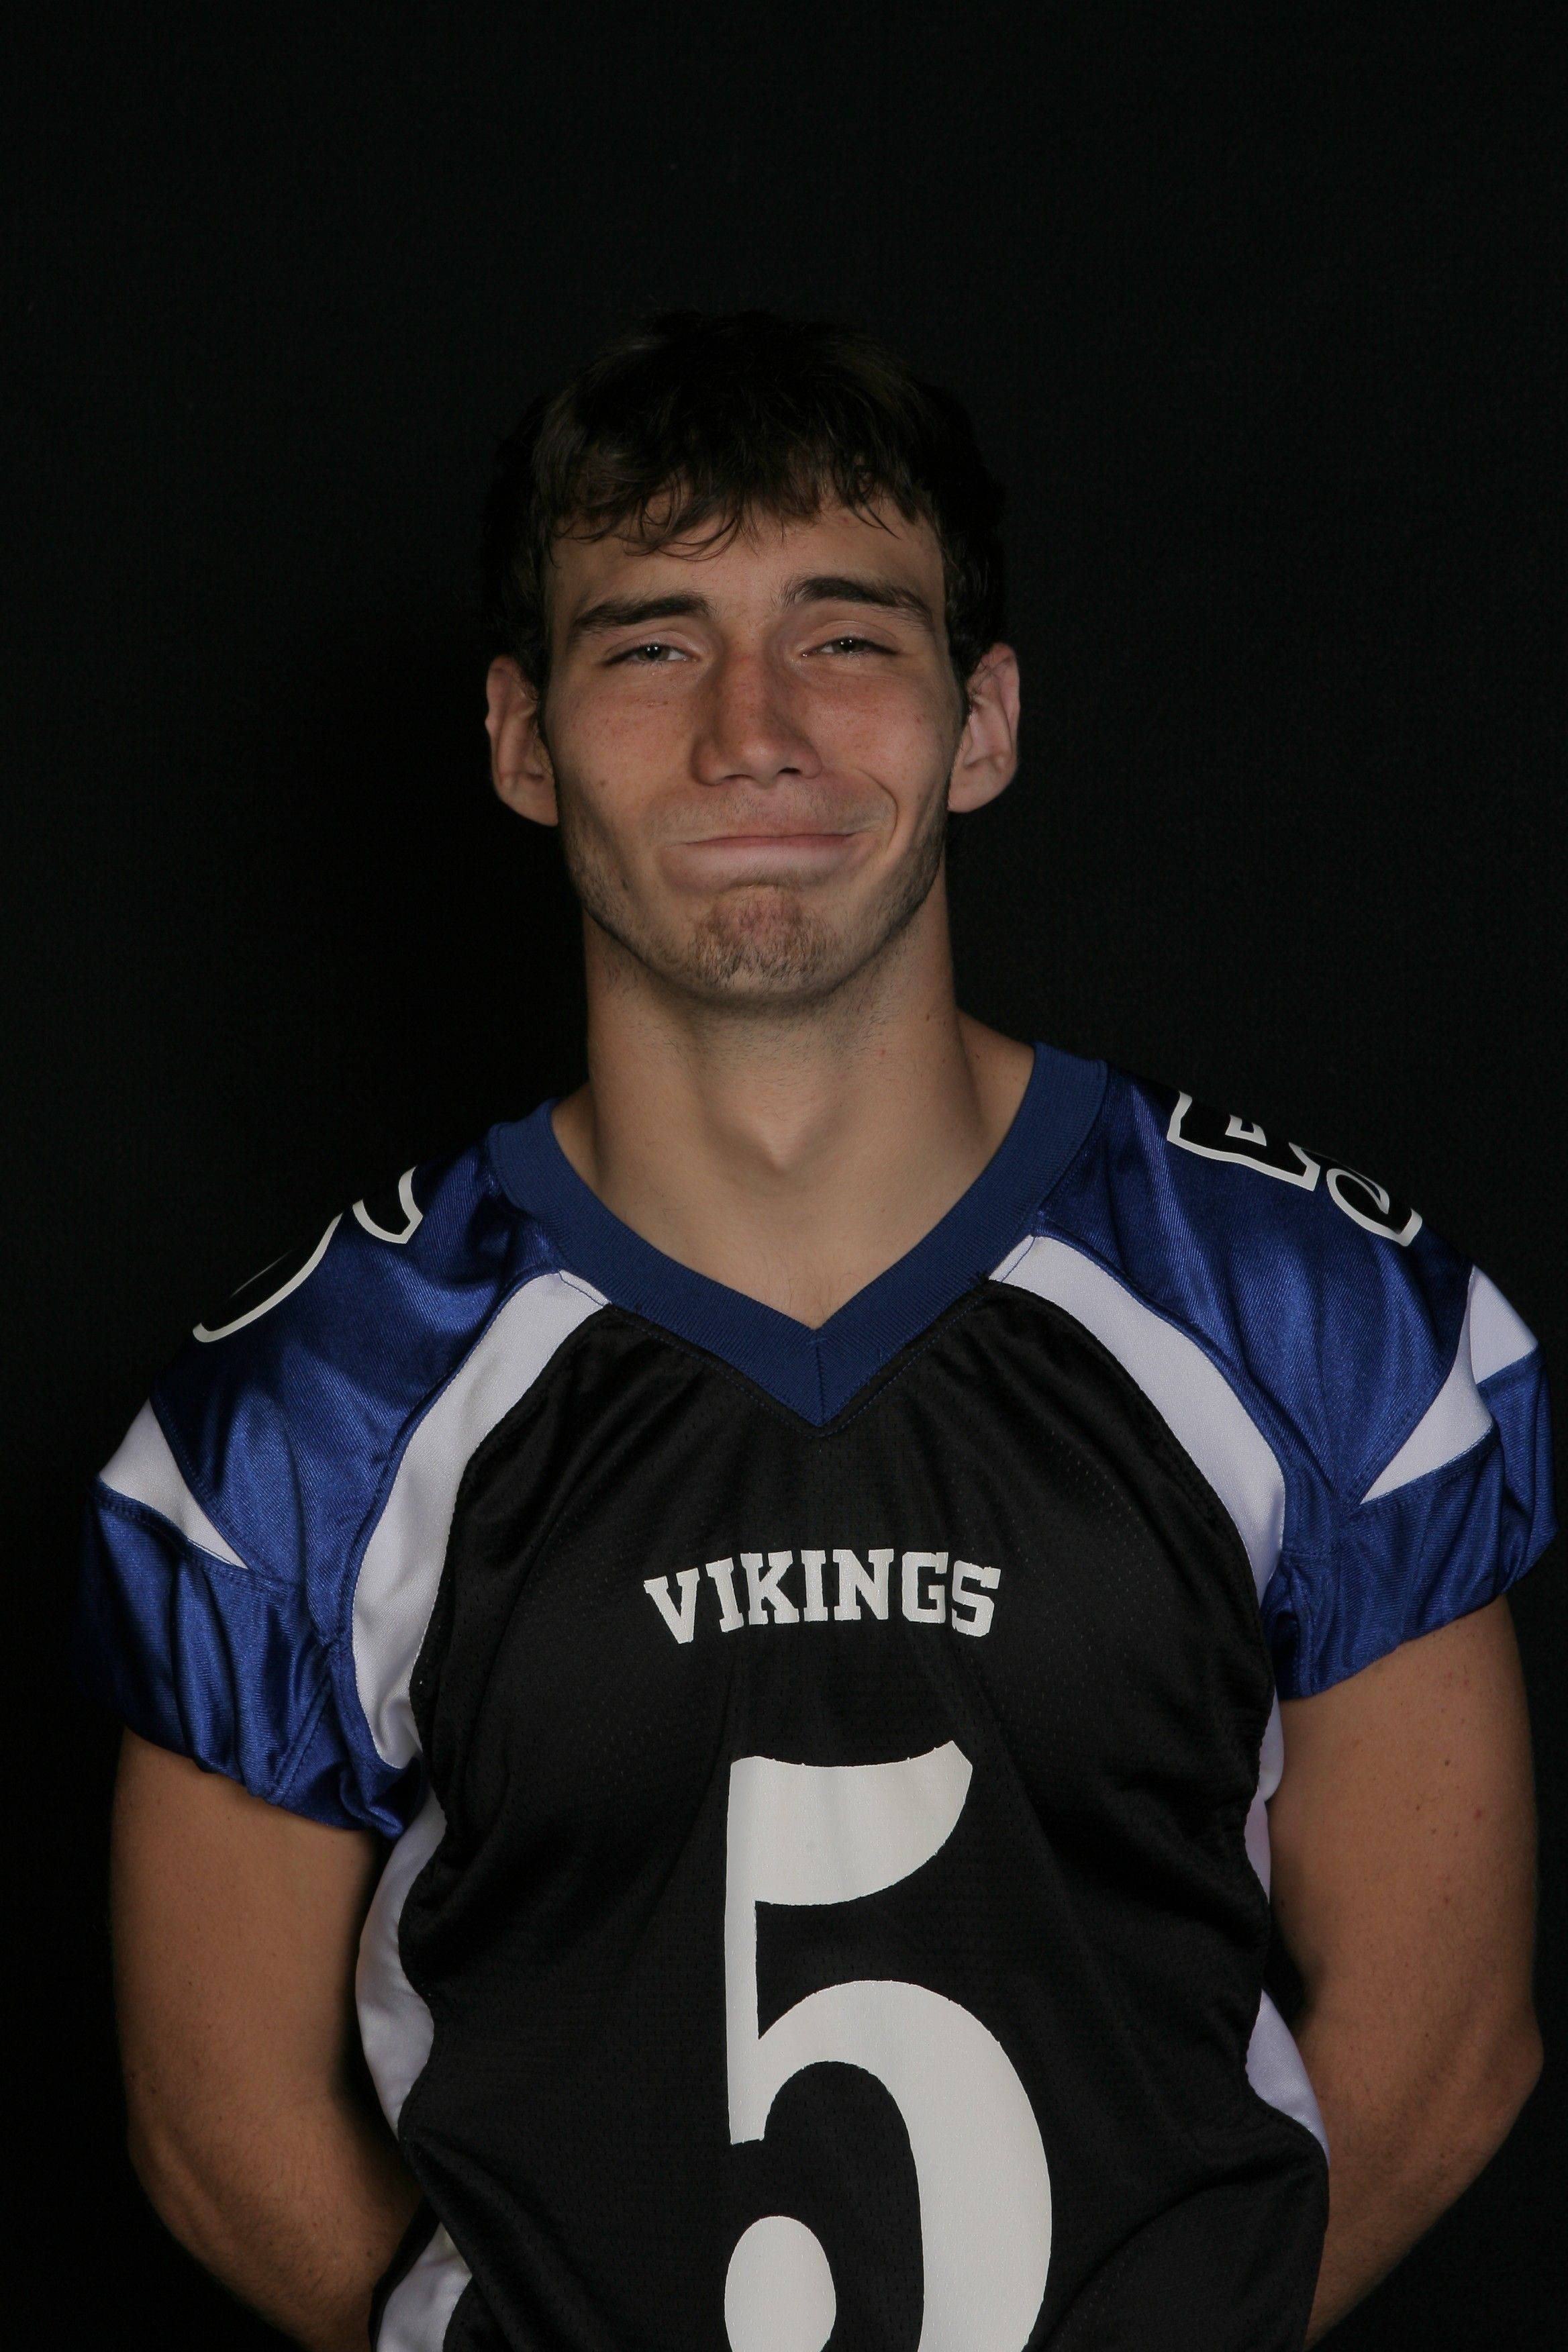 Andrew Mariotti, Geneva all-area football player